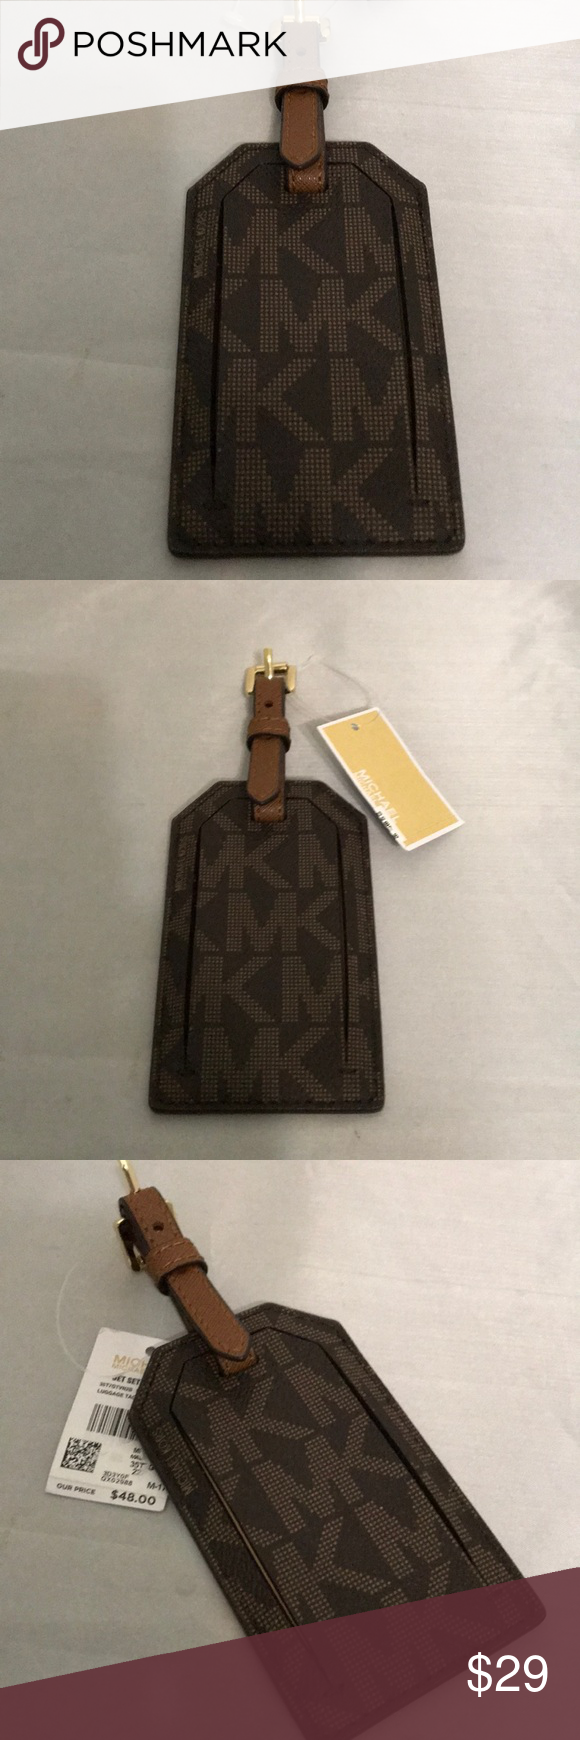 21563ebbb1fd NWT Michael Kors Jet Set Travel Luggage Tag Looking for your luggage at the  airport is a breeze with this gorgeous luggage tag holder.